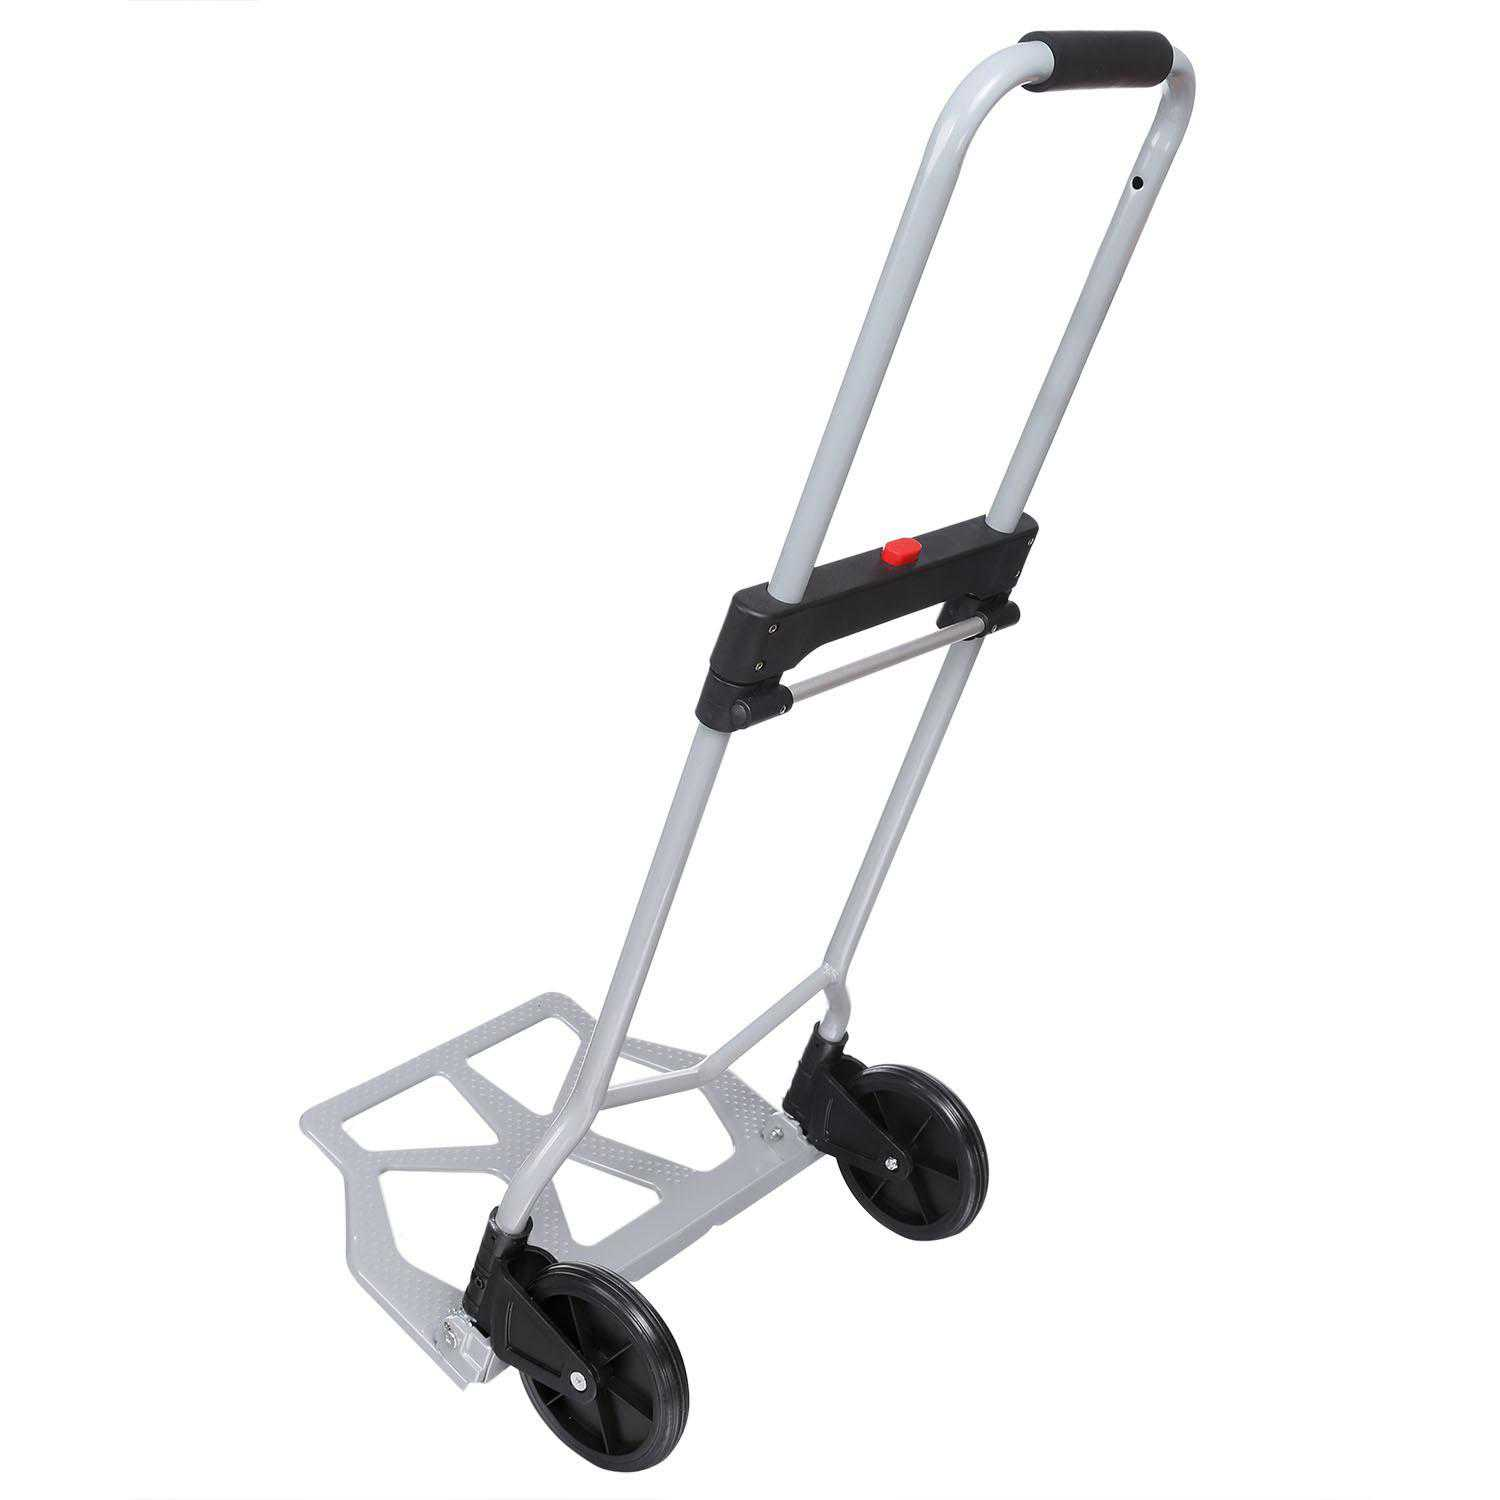 Portable Folding Hand Truck Dolly Luggage Carts, Silver, 220 lbs Capacity, Industrial/Travel/Shopping BEDTS